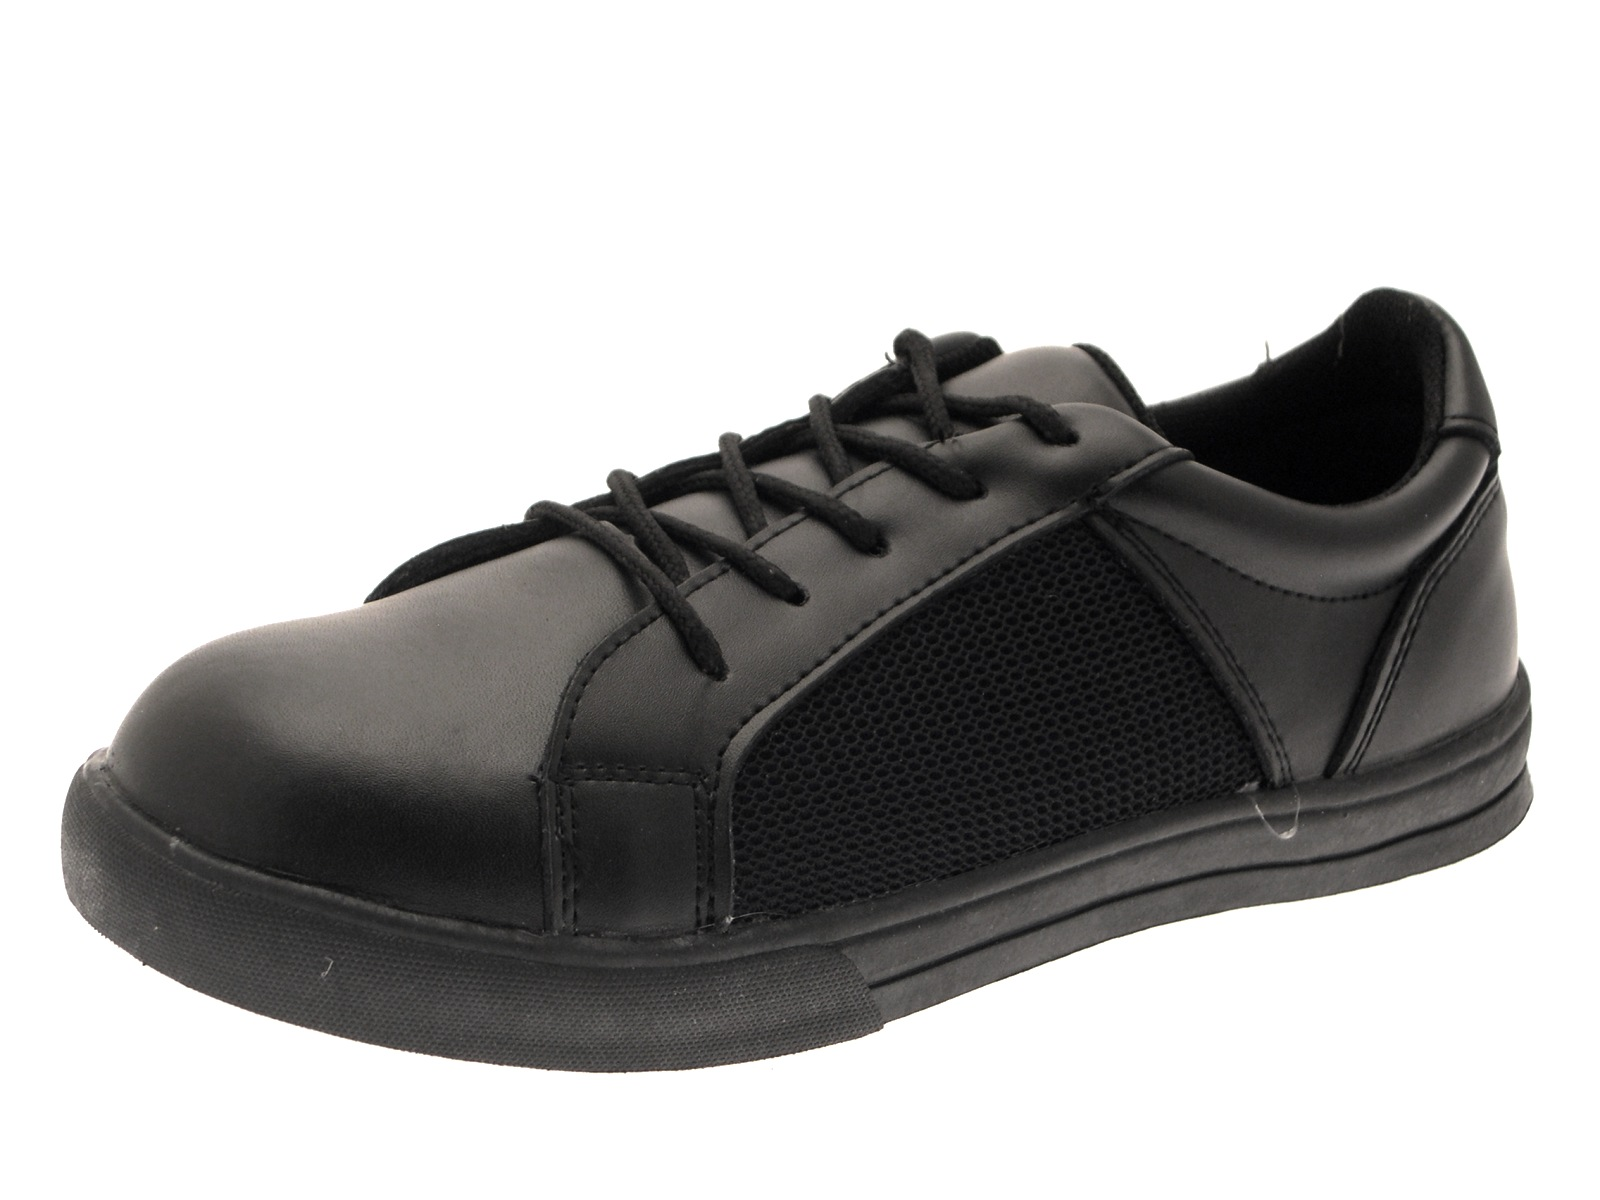 Images Of Black Leather Kids School Shoes